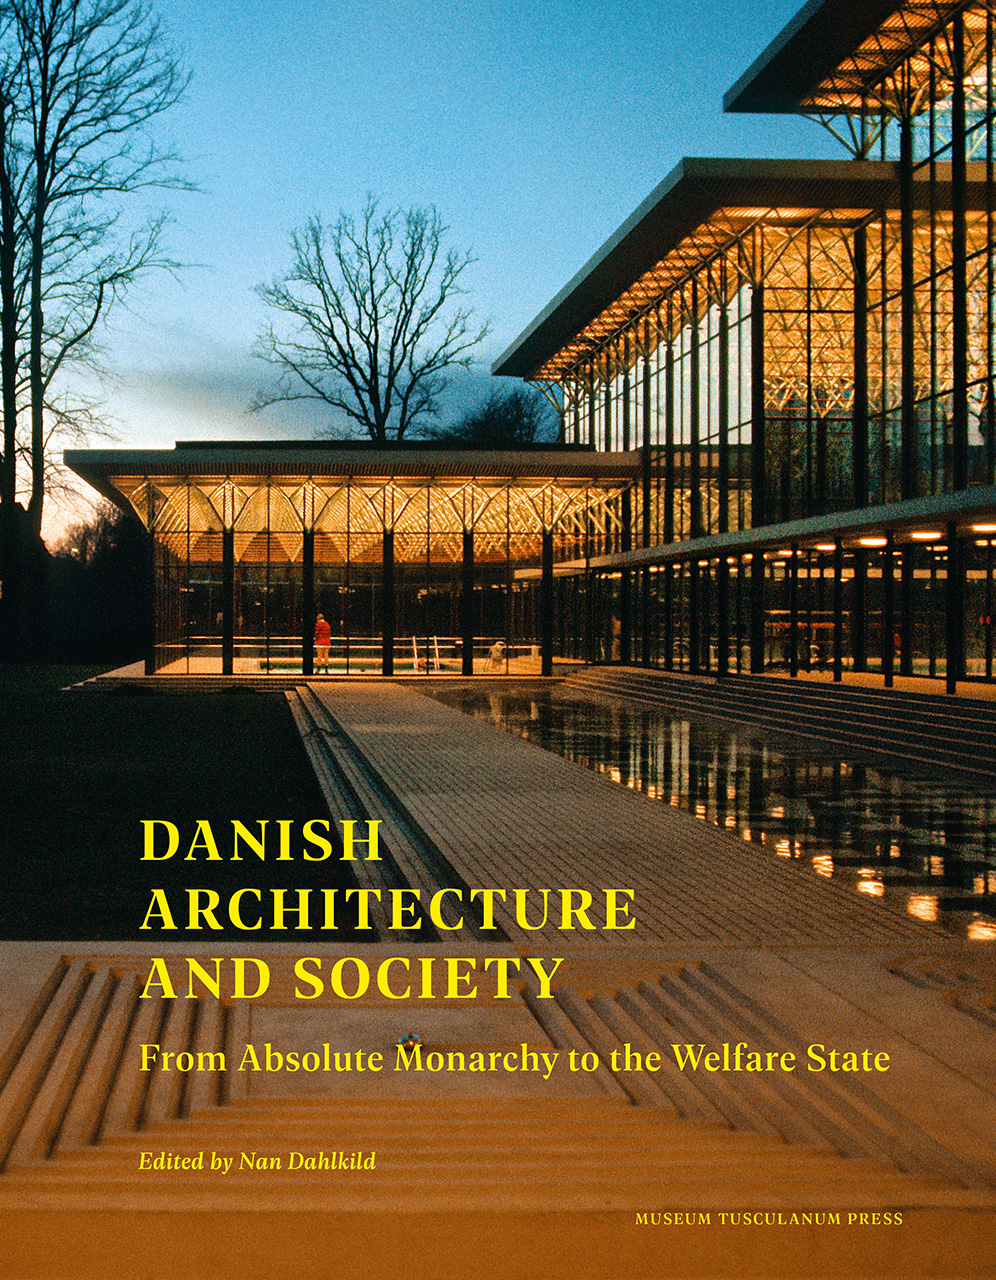 Danish Architecture and Society: From Absolute Monarchy to the Welfare State